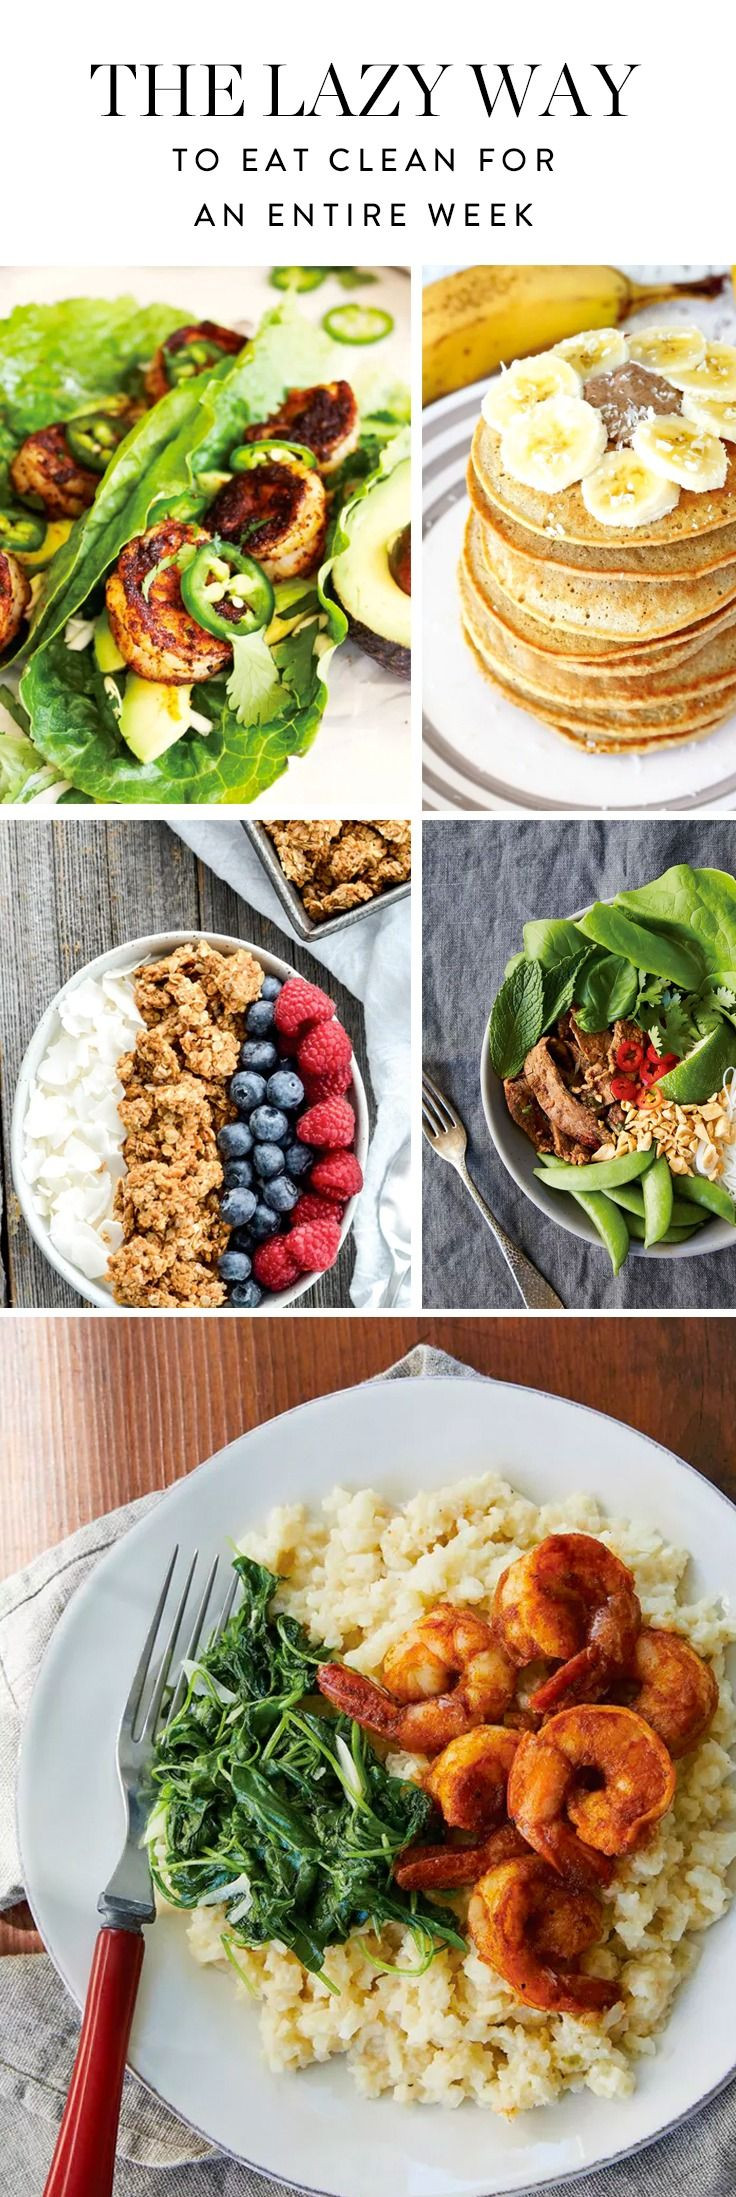 Healthy Clean Dinners  Best 25 Clean eating ideas on Pinterest